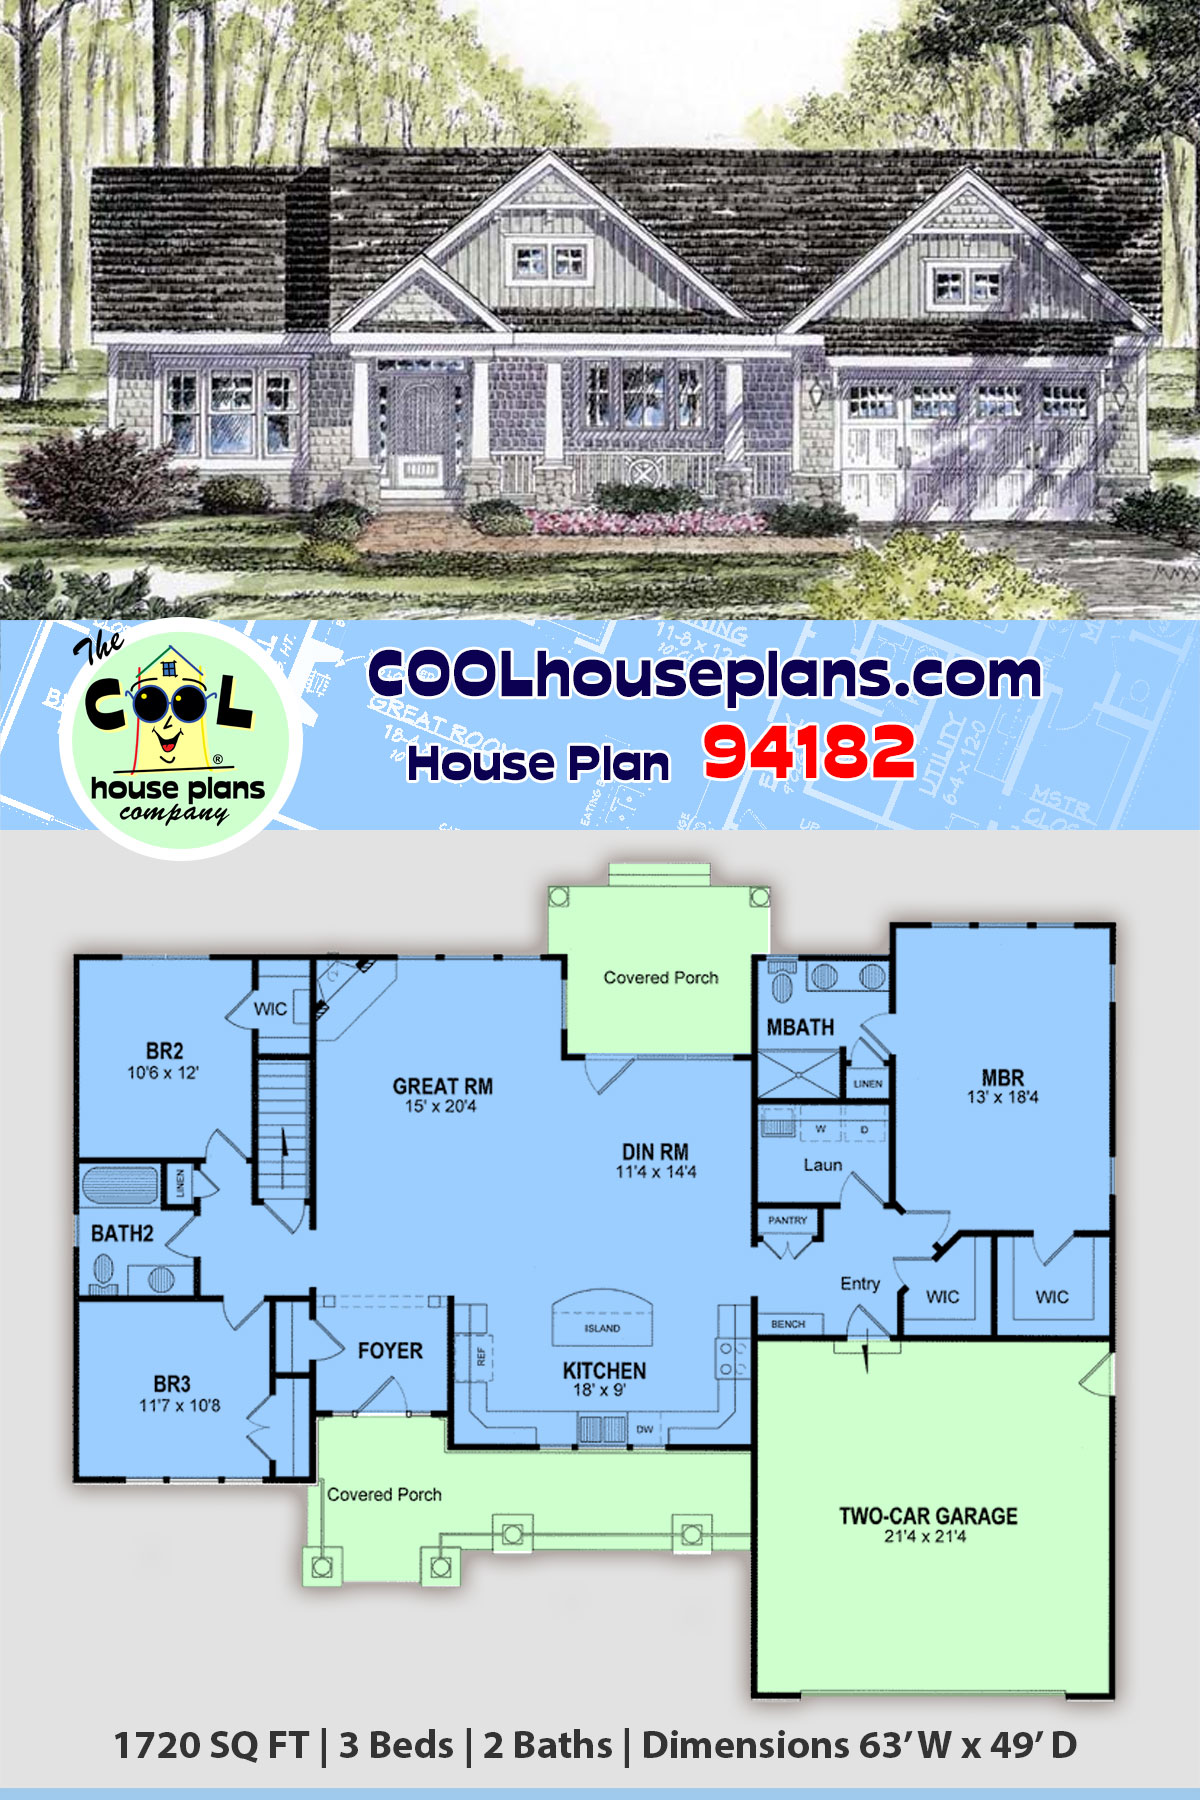 Cottage, Country, Craftsman, Ranch, Southern, Traditional House Plan 94182 with 3 Beds, 2 Baths, 2 Car Garage